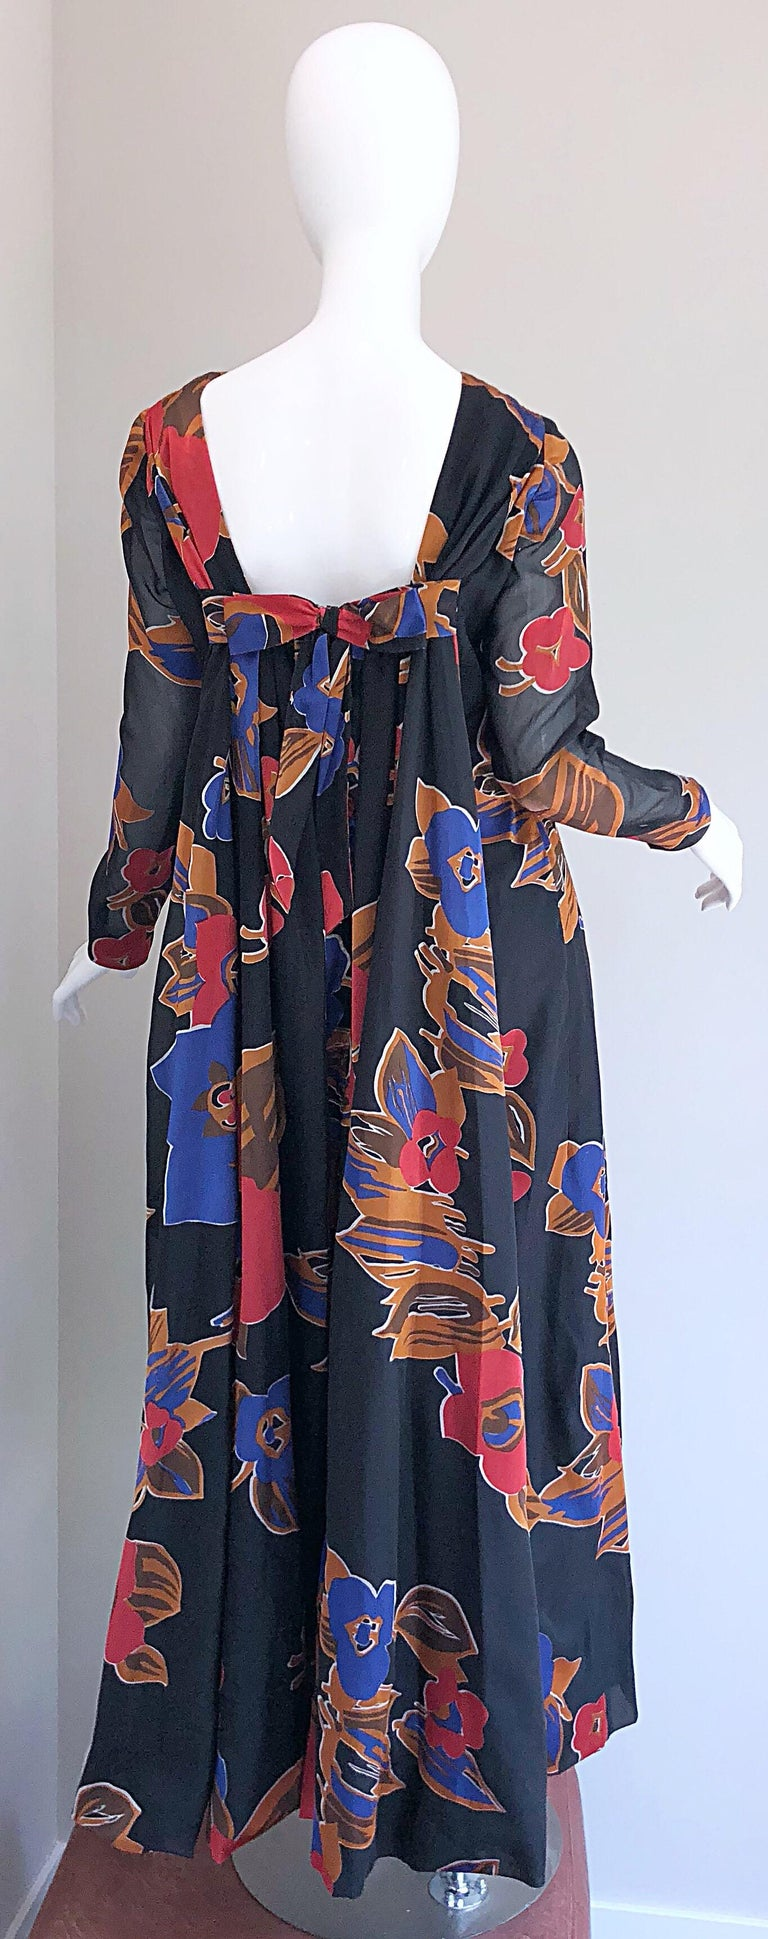 1960s John Boyle Bishop Black + Brown + Red Abstract Trained 60s Gown Maxi Dress In Excellent Condition For Sale In Chicago, IL